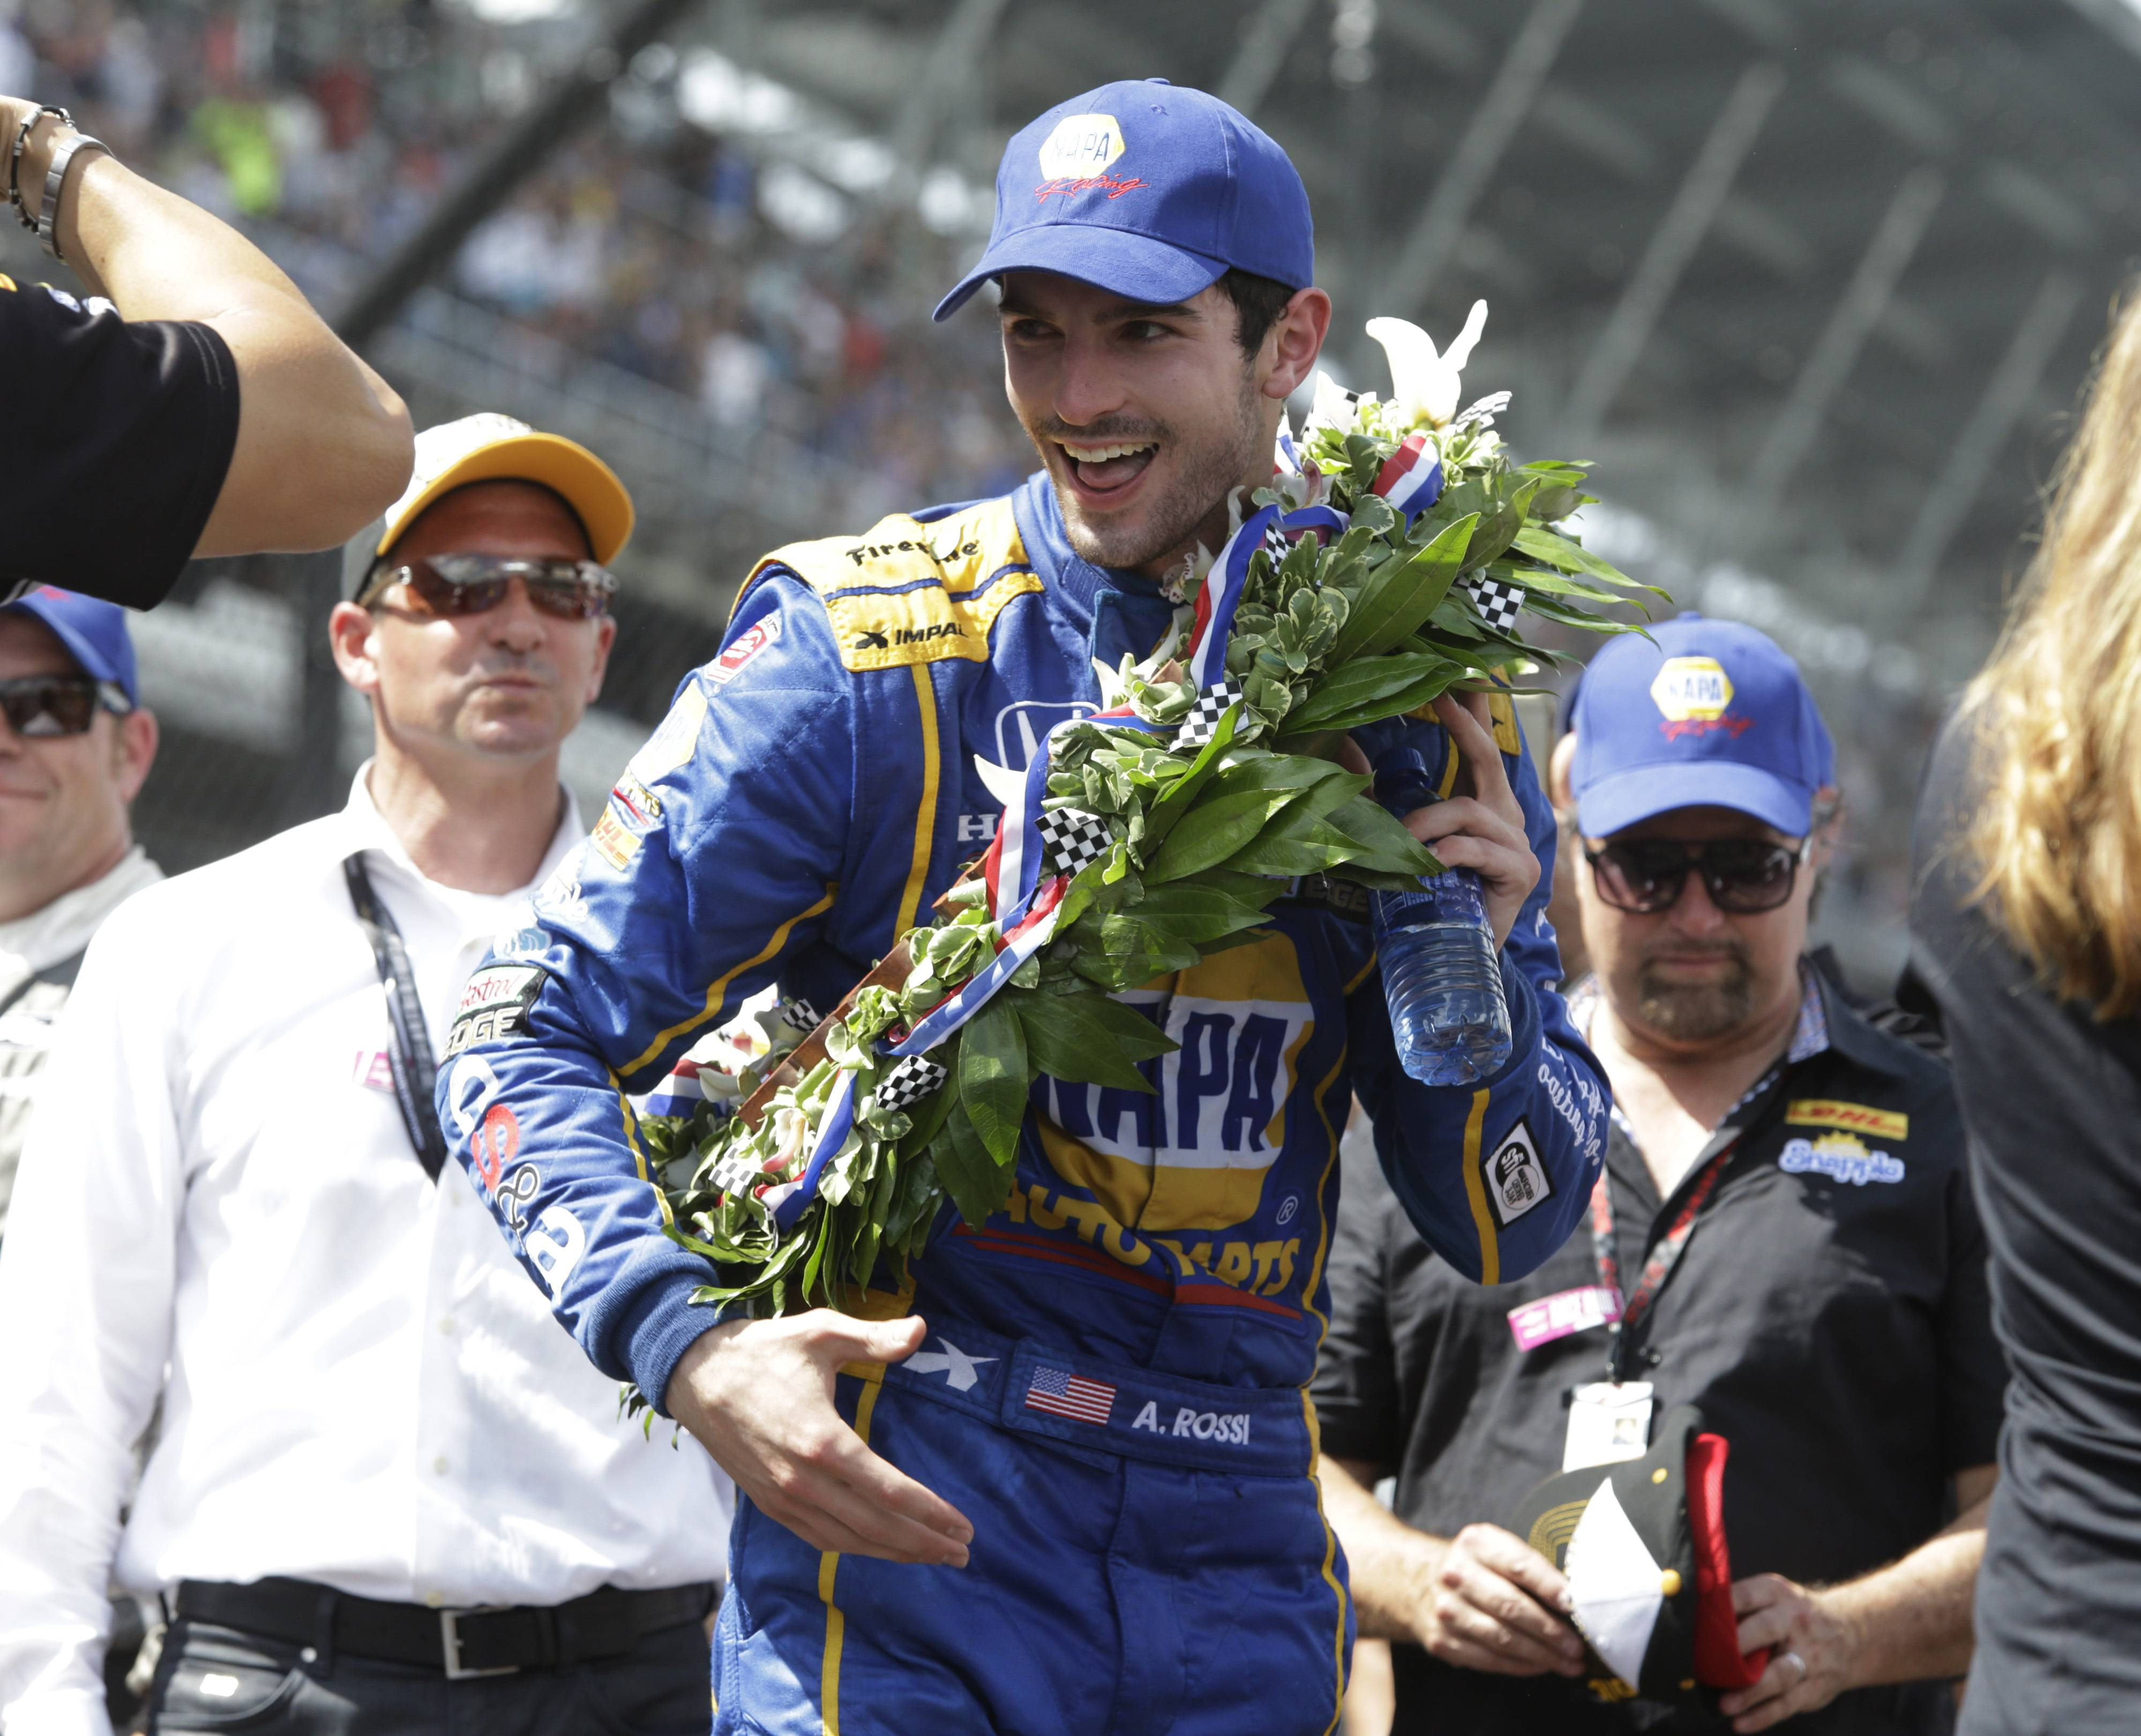 Alexander Rossi smiles after wining the 100th running of the Indianapolis 500 auto race at Indianapolis Motor Speedway in Indianapolis, Sunday, May 29, 2016.